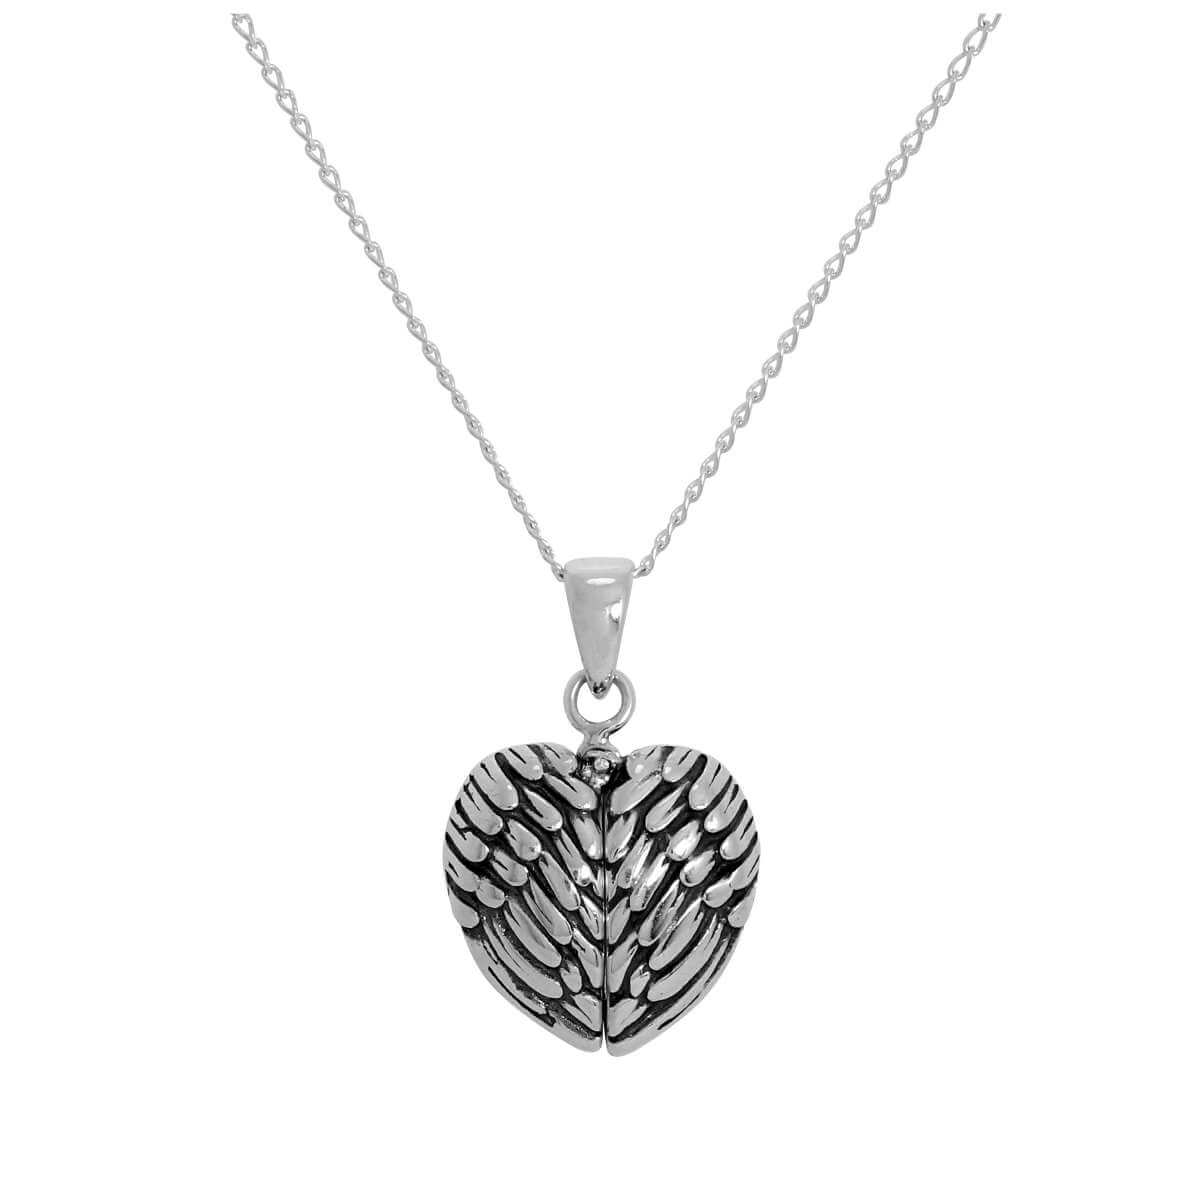 Sterling Silver Opening Angel Wing Heart Pendant with Little Heart Inside on Chain 14 - 22 Inches